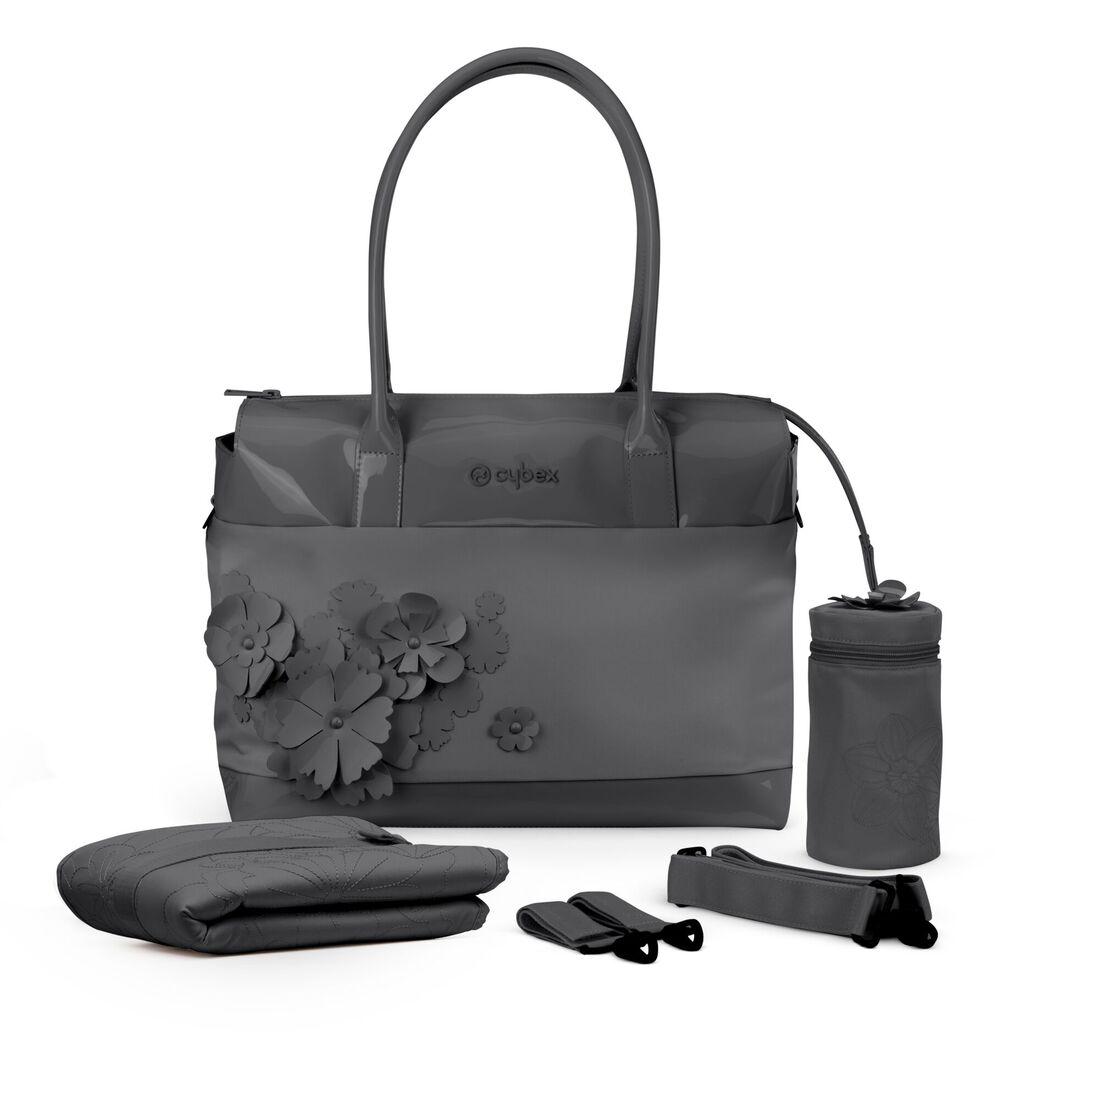 CYBEX Changing Bag Simply Flowers - Dream Grey in Dream Grey large image number 3